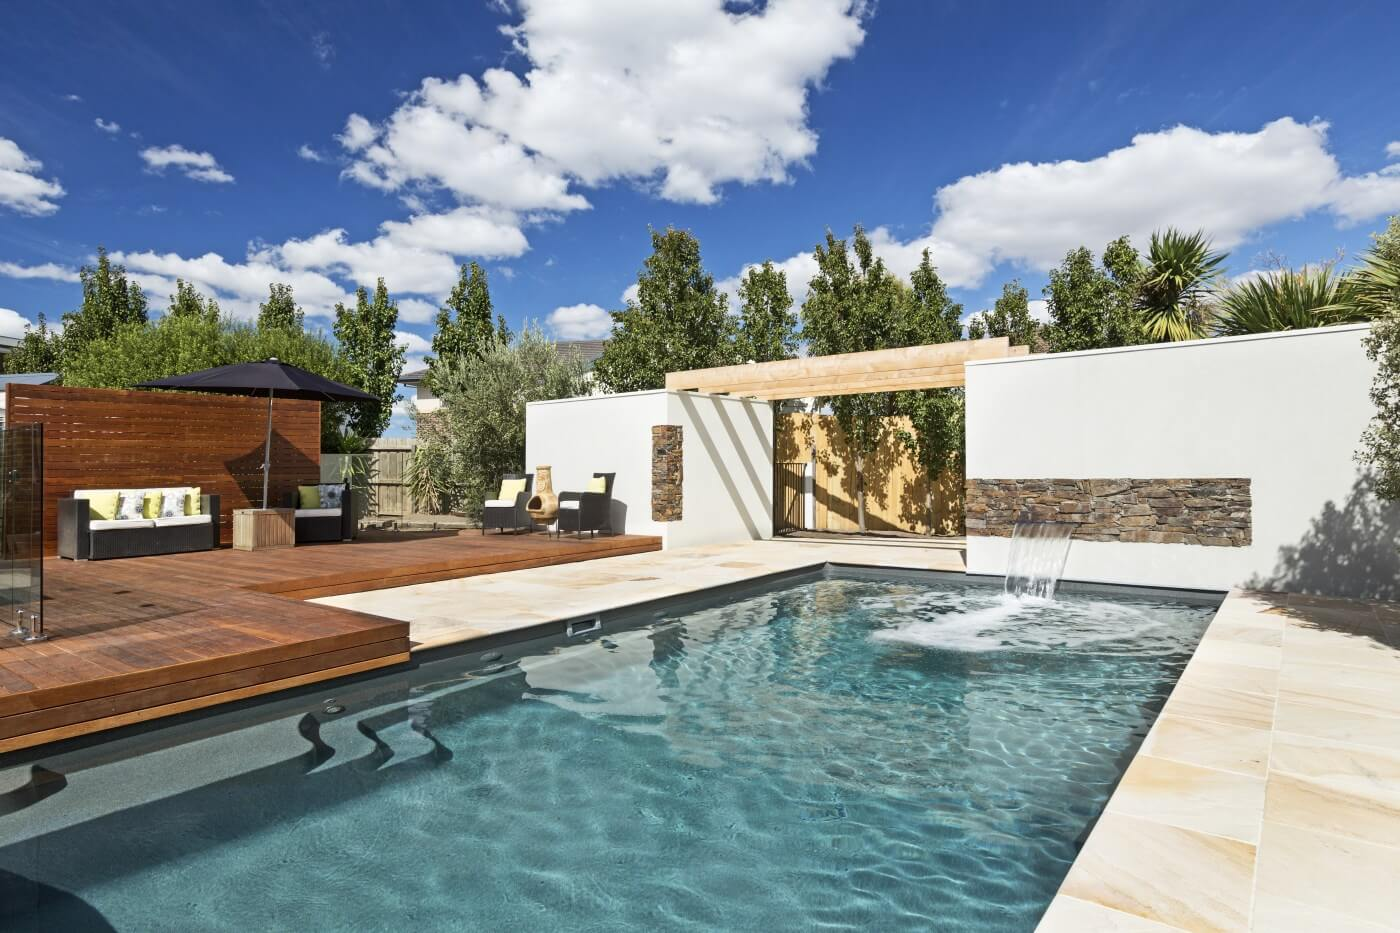 Water Features Why They Make Such A Difference To Your Swimming Pool